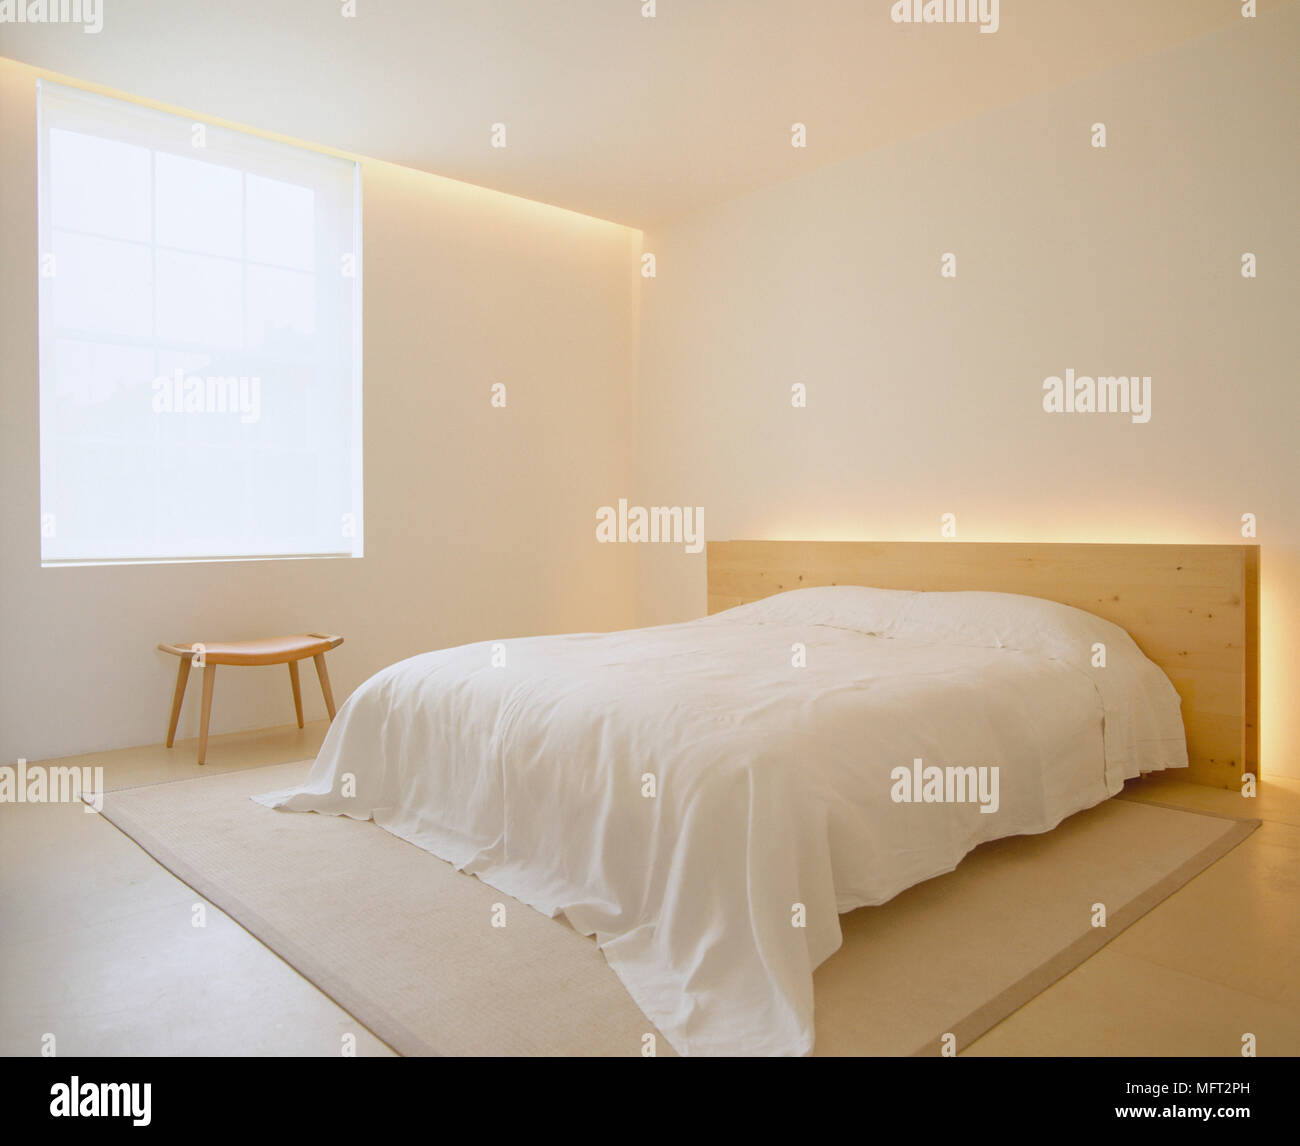 A Modern Neutral Minimalist Bedroom With Double Bed Simple Wooden